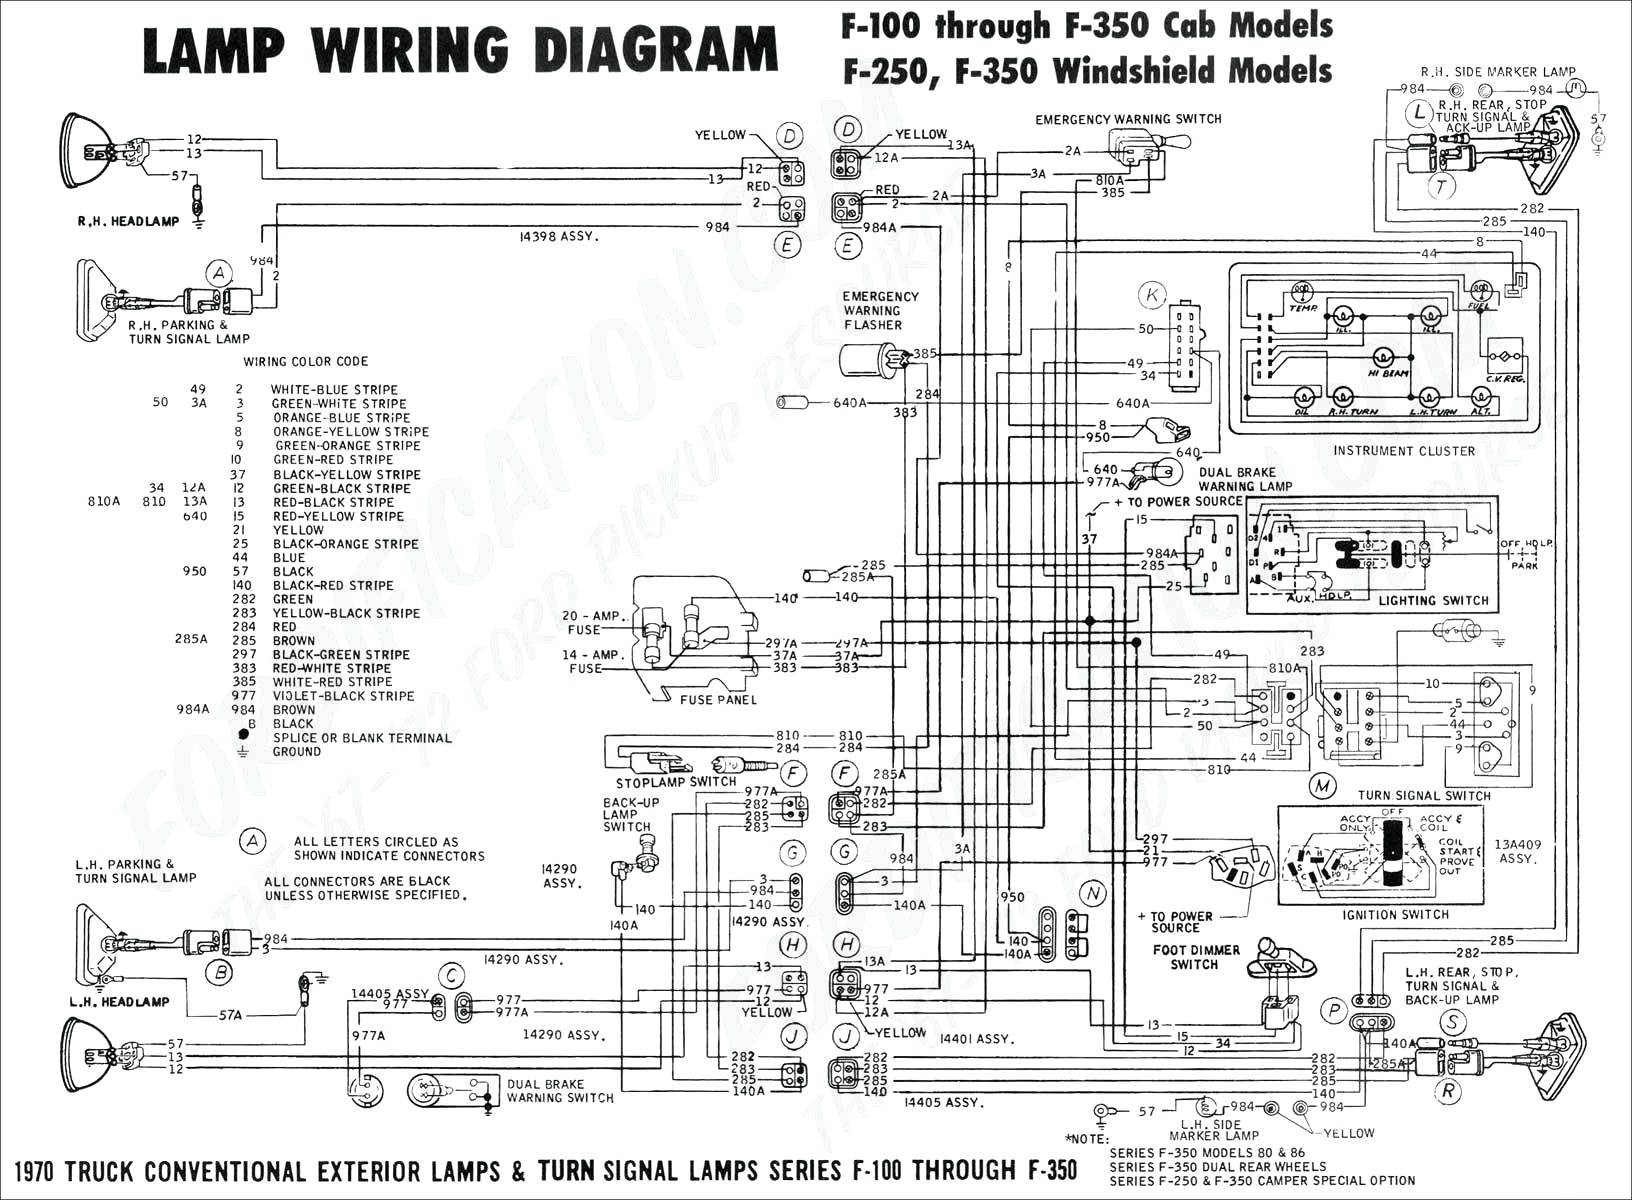 2001 Oldsmobile Alero Wiring Diagram Library 1947 Saturn Sl1 Vacuum Line Lzk Gallery Schematic U2022 Rh Aerofitness Co 1959 Chevy